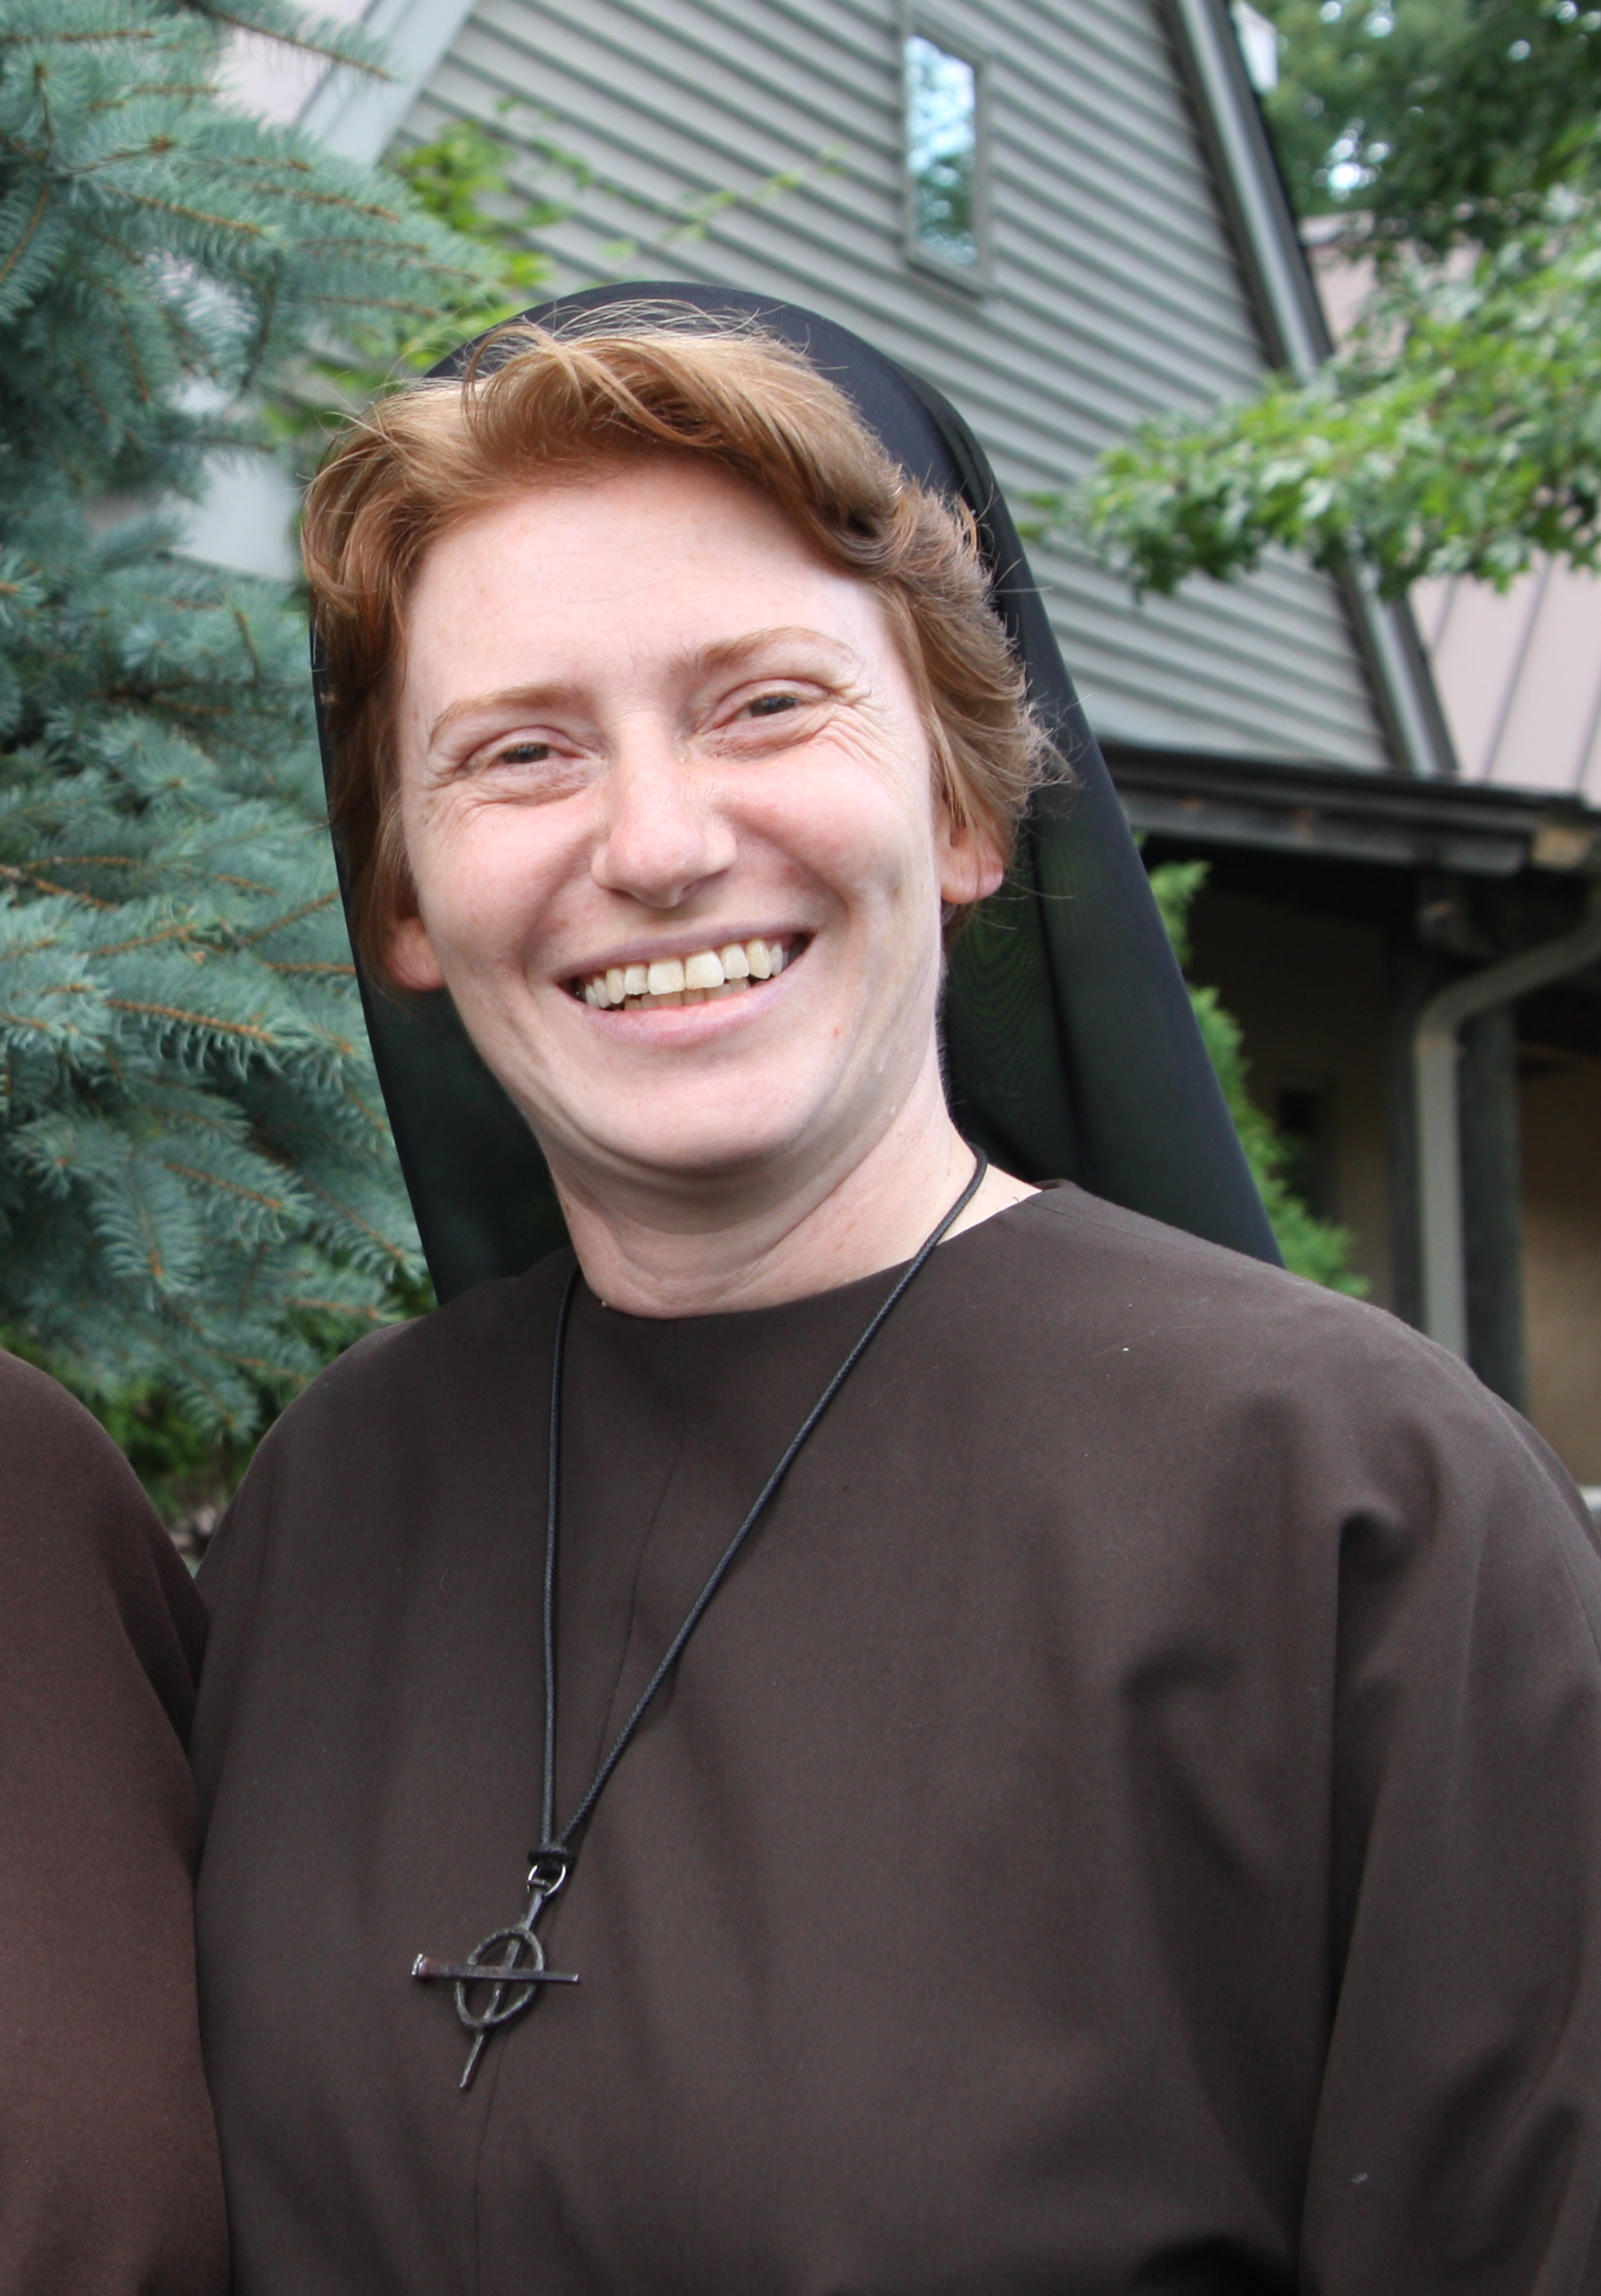 The Corporal Works of Mercy and the Synod on Young People, the Faith and Vocational Discernment